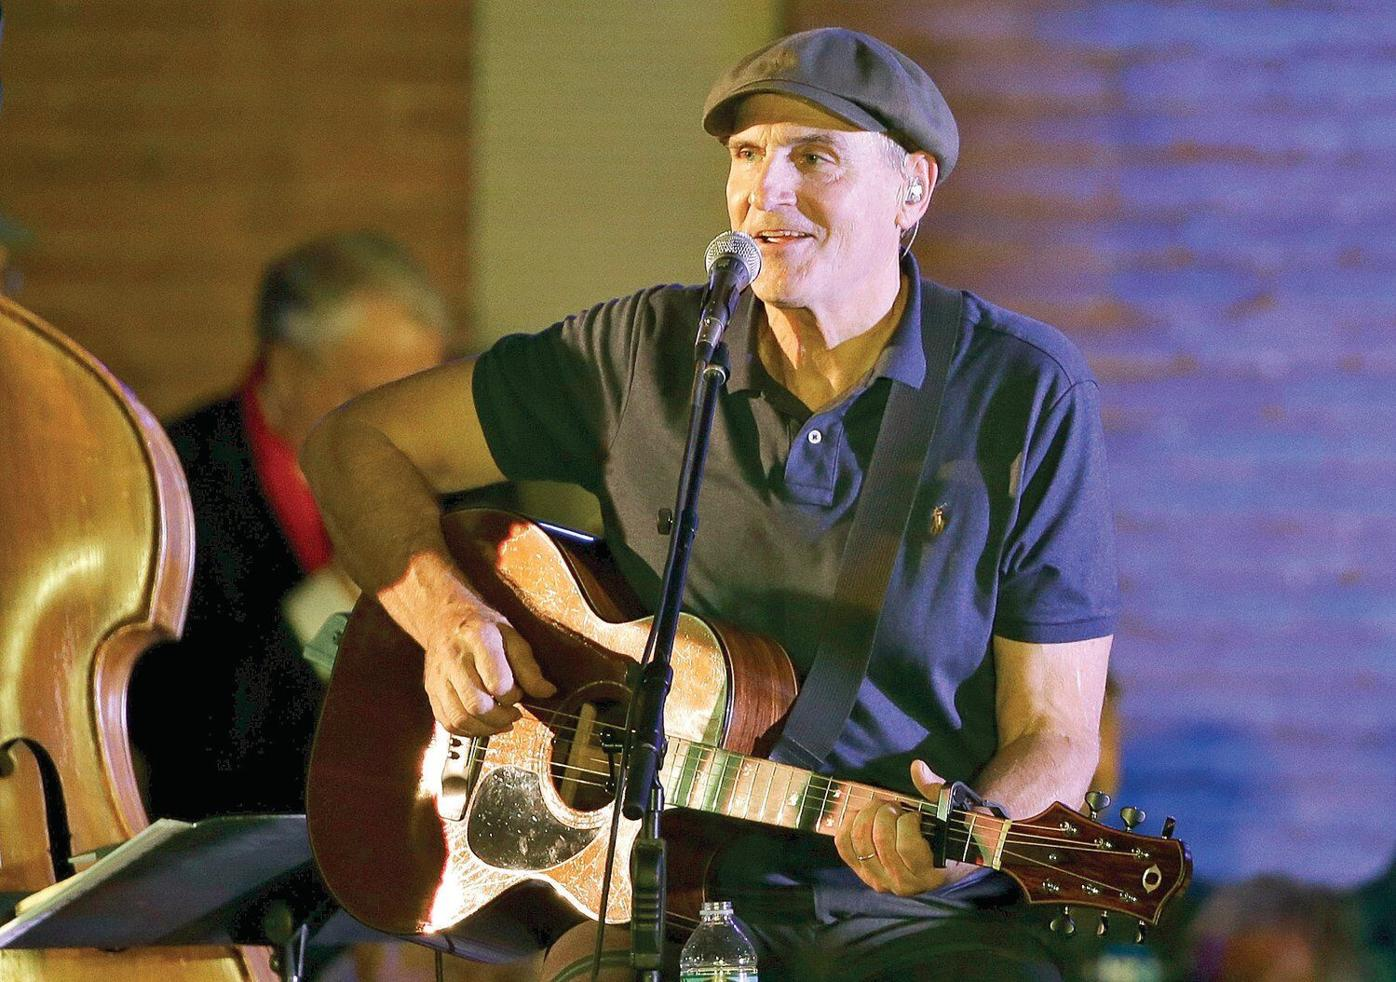 Audio memoir to tell tale of James Taylor's rise to fame